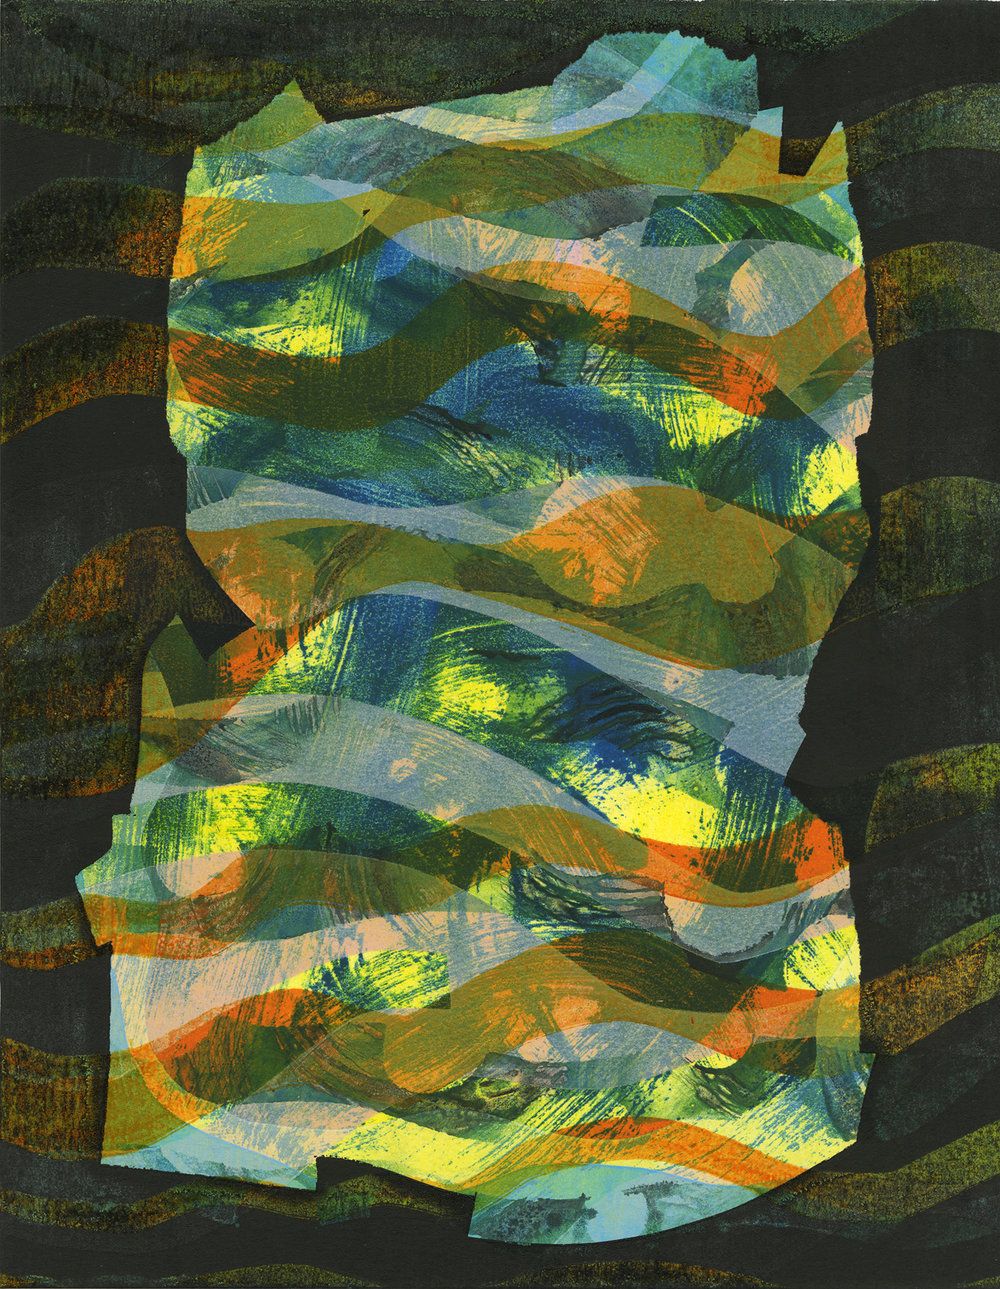 Untitled , 2018, Monotype on Lenox 100 paper, 14 x 10 inches; 36 x 25 centimeters, Edition of 1